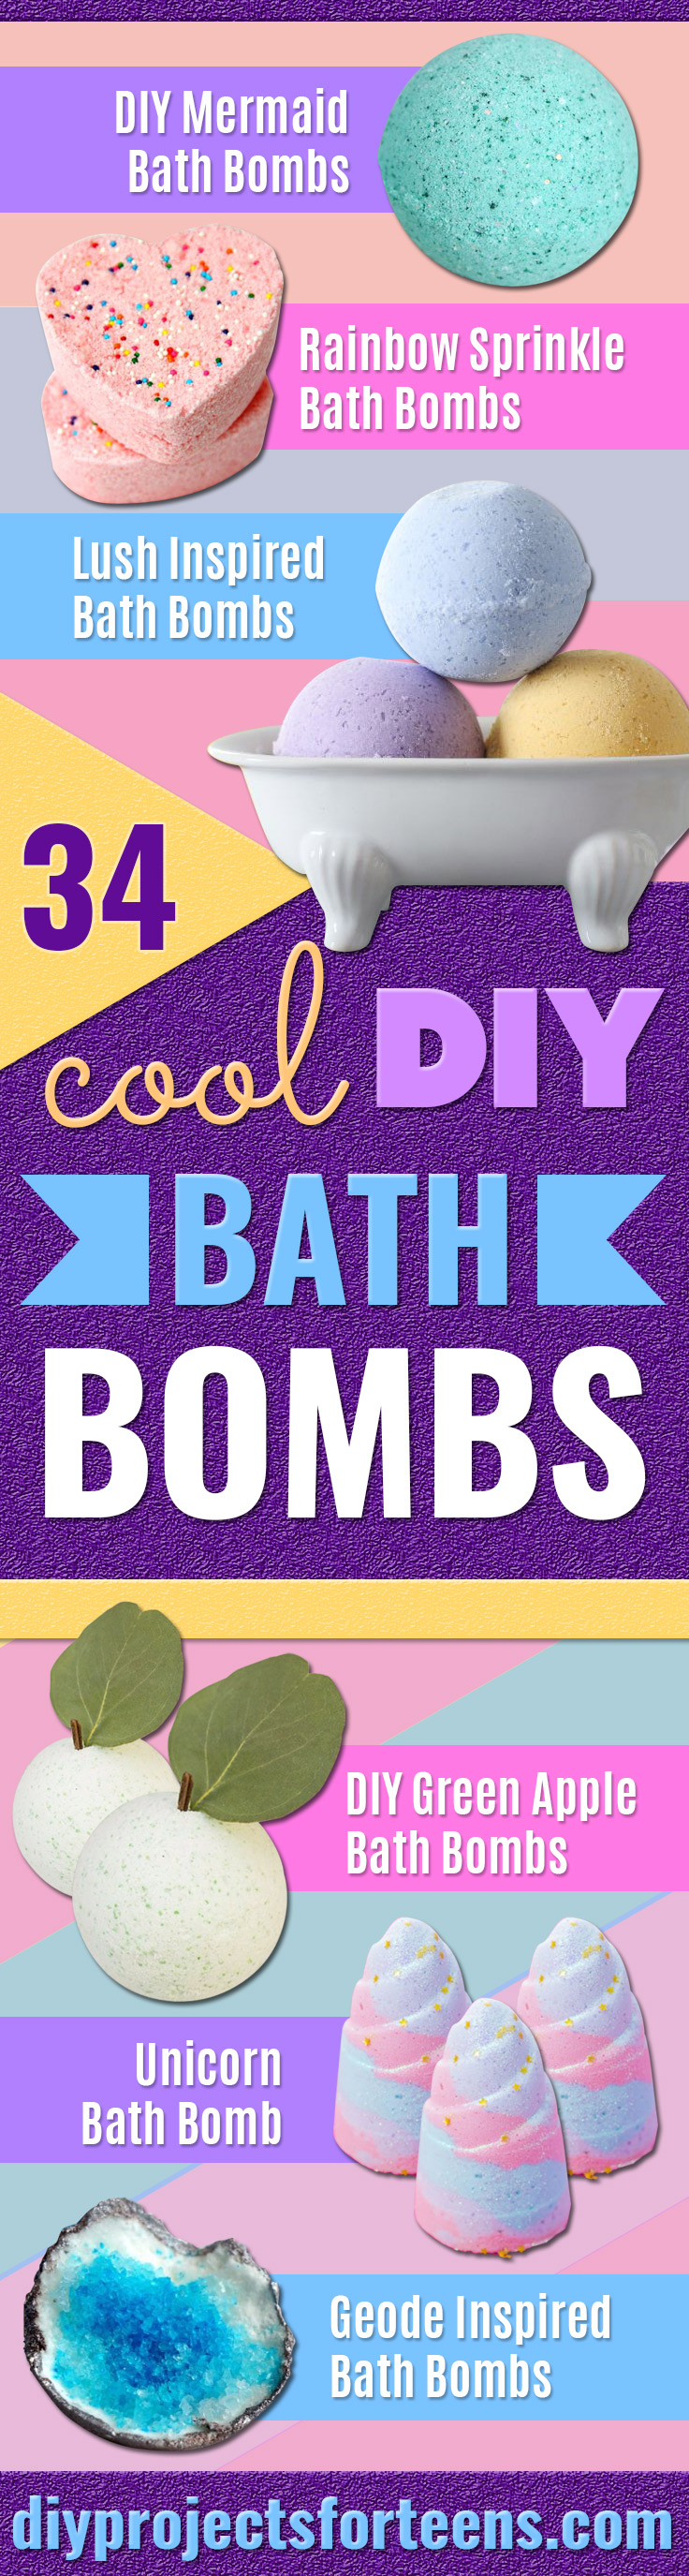 Cool DIY Bath Bombs to Make At Home - Rose Milk Bath Bombs - Recipes and Tutorial for How To Make A Bath Bomb - Best Bathbomb Ideas - Fun DIY Projects for Women, Teens, and Girls | DIY Bath Bombs Recipe and Tutorials | Make Cheap Gifts Like Lush Bath Bombs http://diyprojectsforteens.com/best-diy-bath-bombs